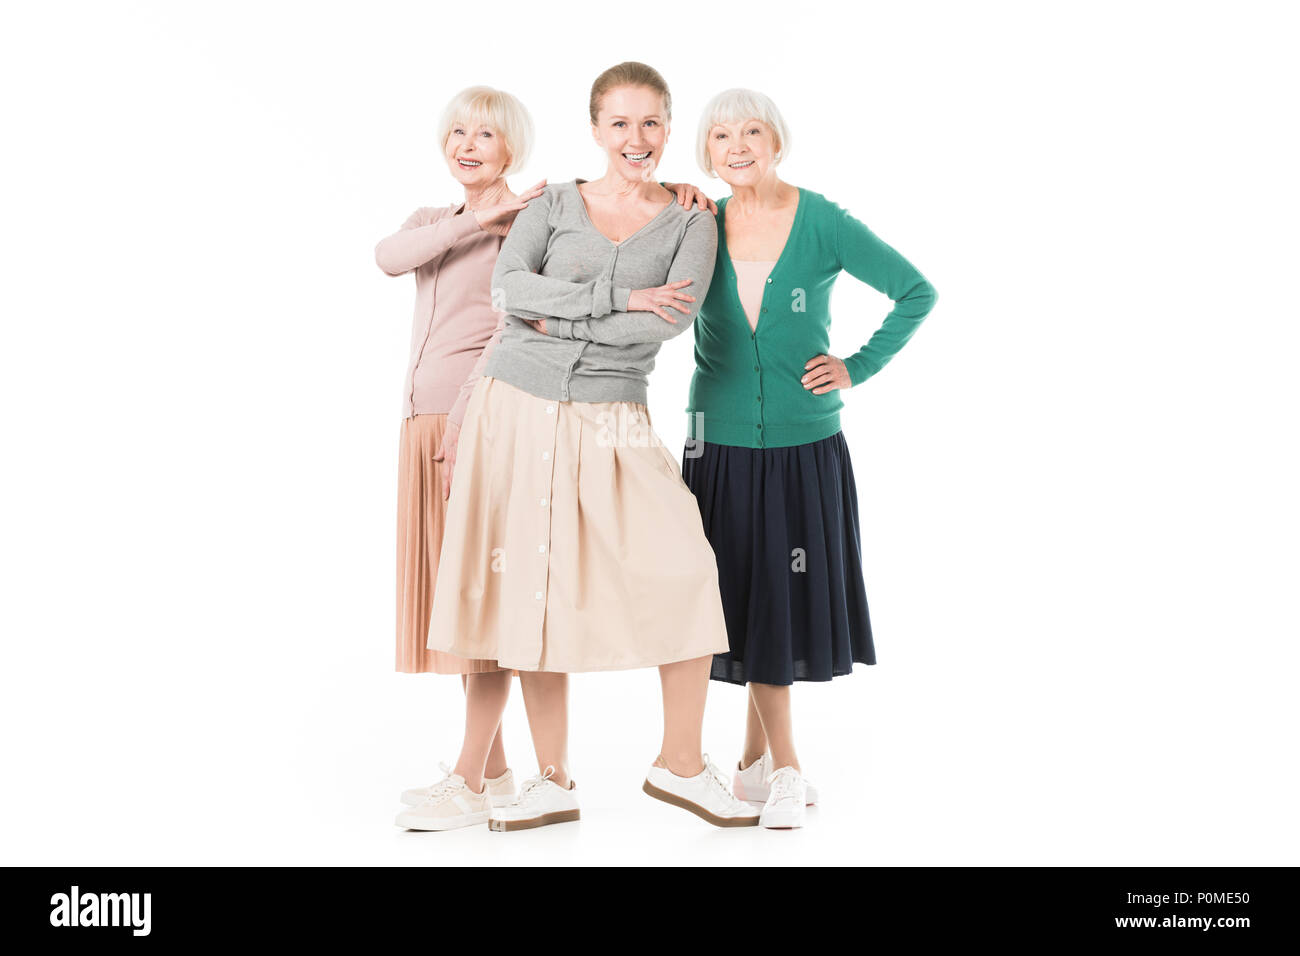 Three stylish women in skirts standing isolated on white - Stock Image